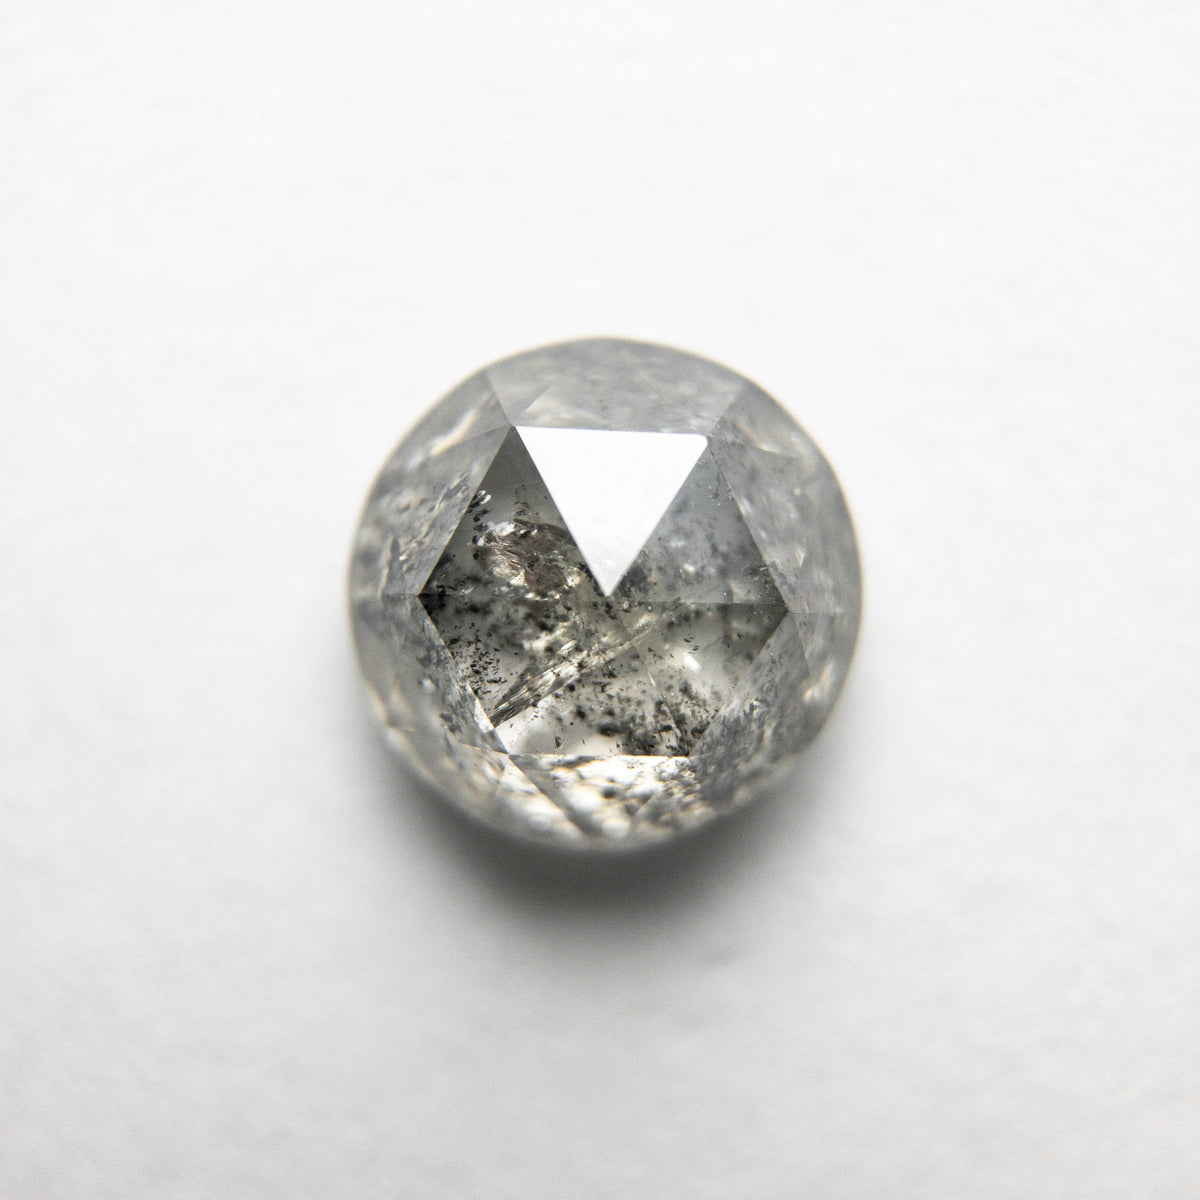 1.54ct 7.01x6.85x3.55mm Round Rosecut 18194-11